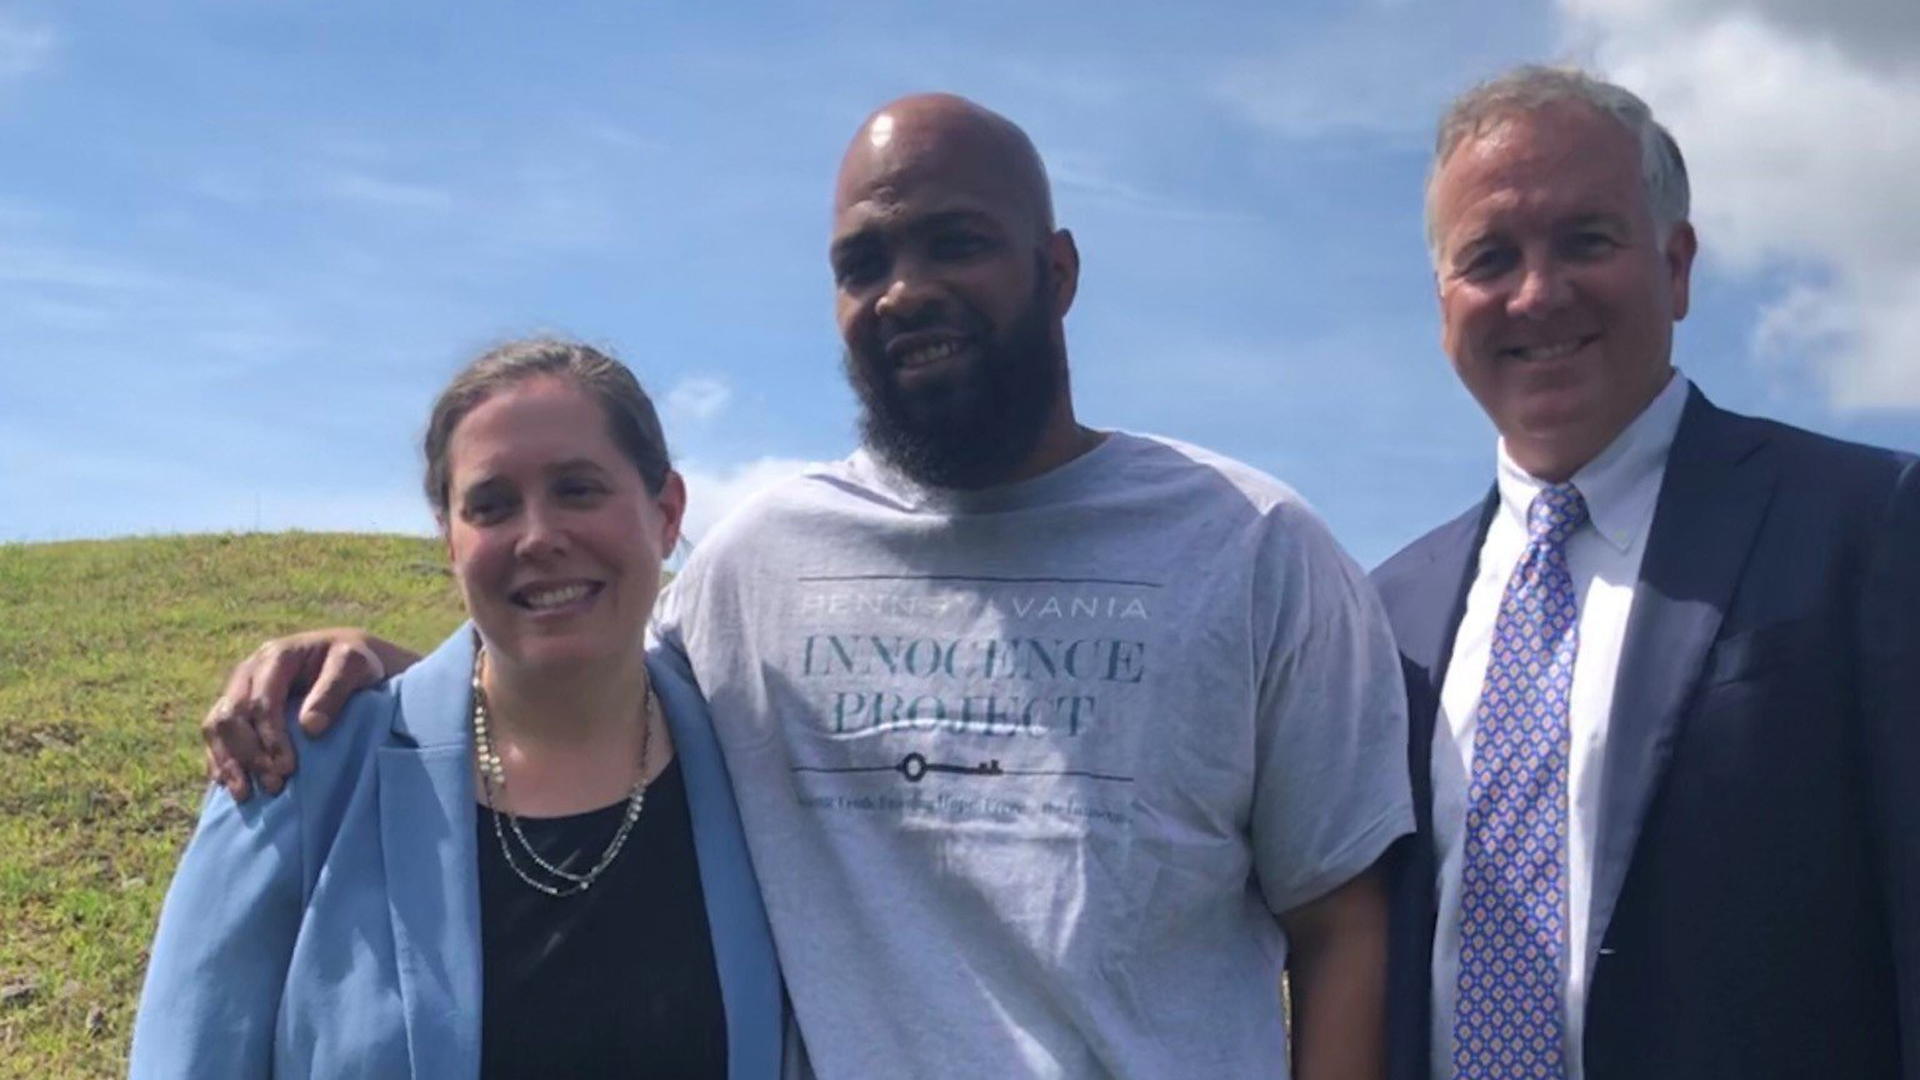 John Miller, center, is seen here with Pepper Hamilton attorneys outside the prison following his release. (Credit: CNN)